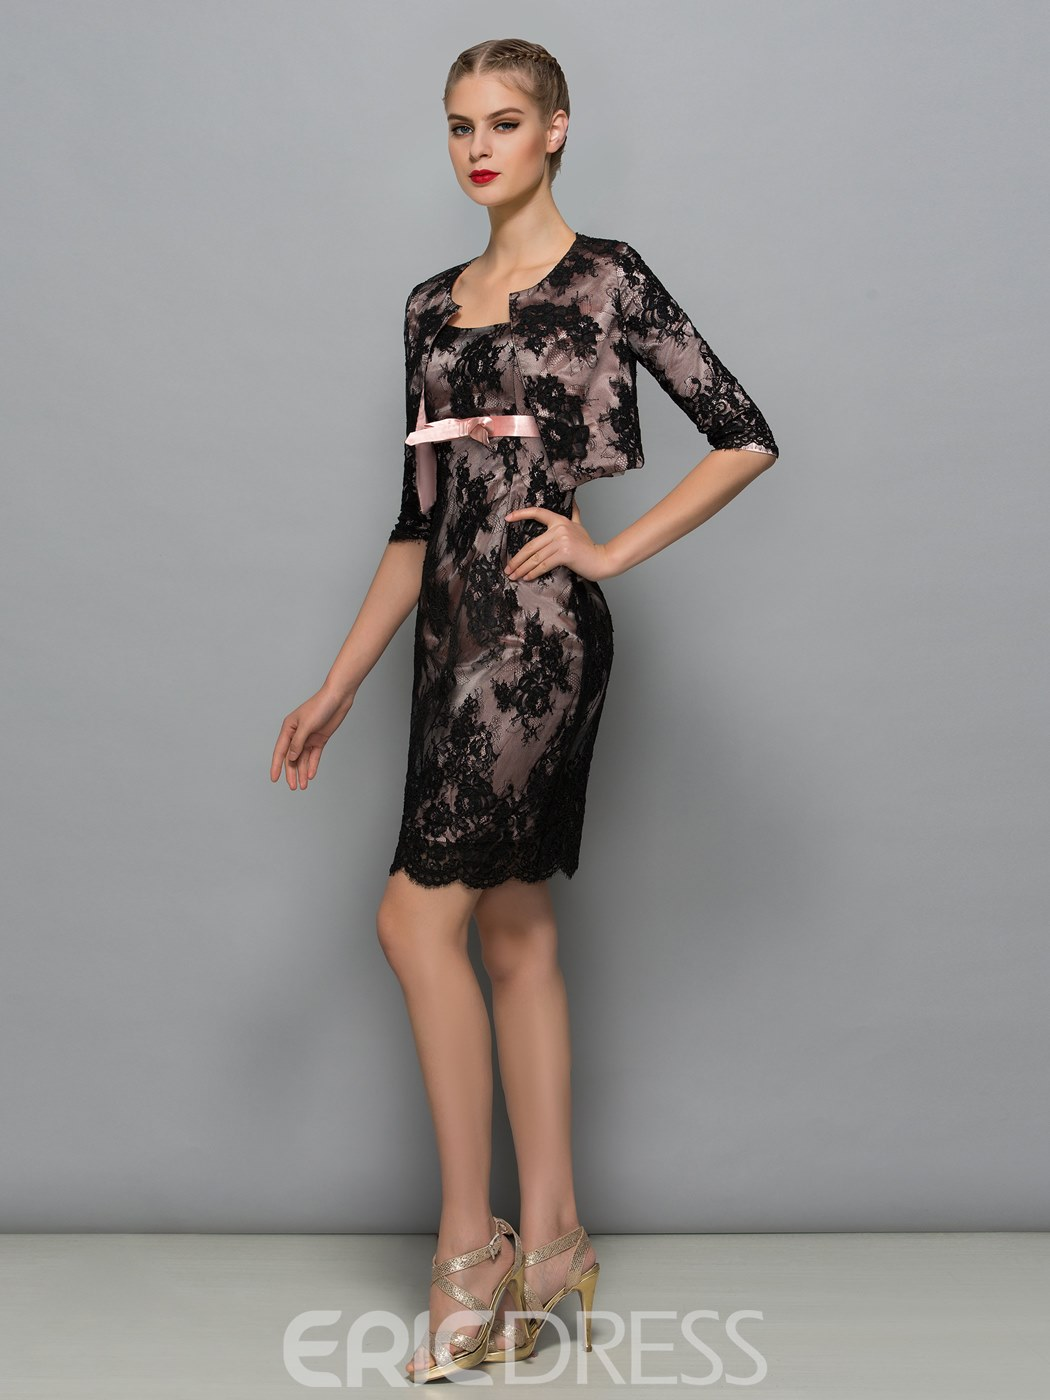 Ericdress Fancy Square Sheath Short Mother Of The Bride Dress With Jacket